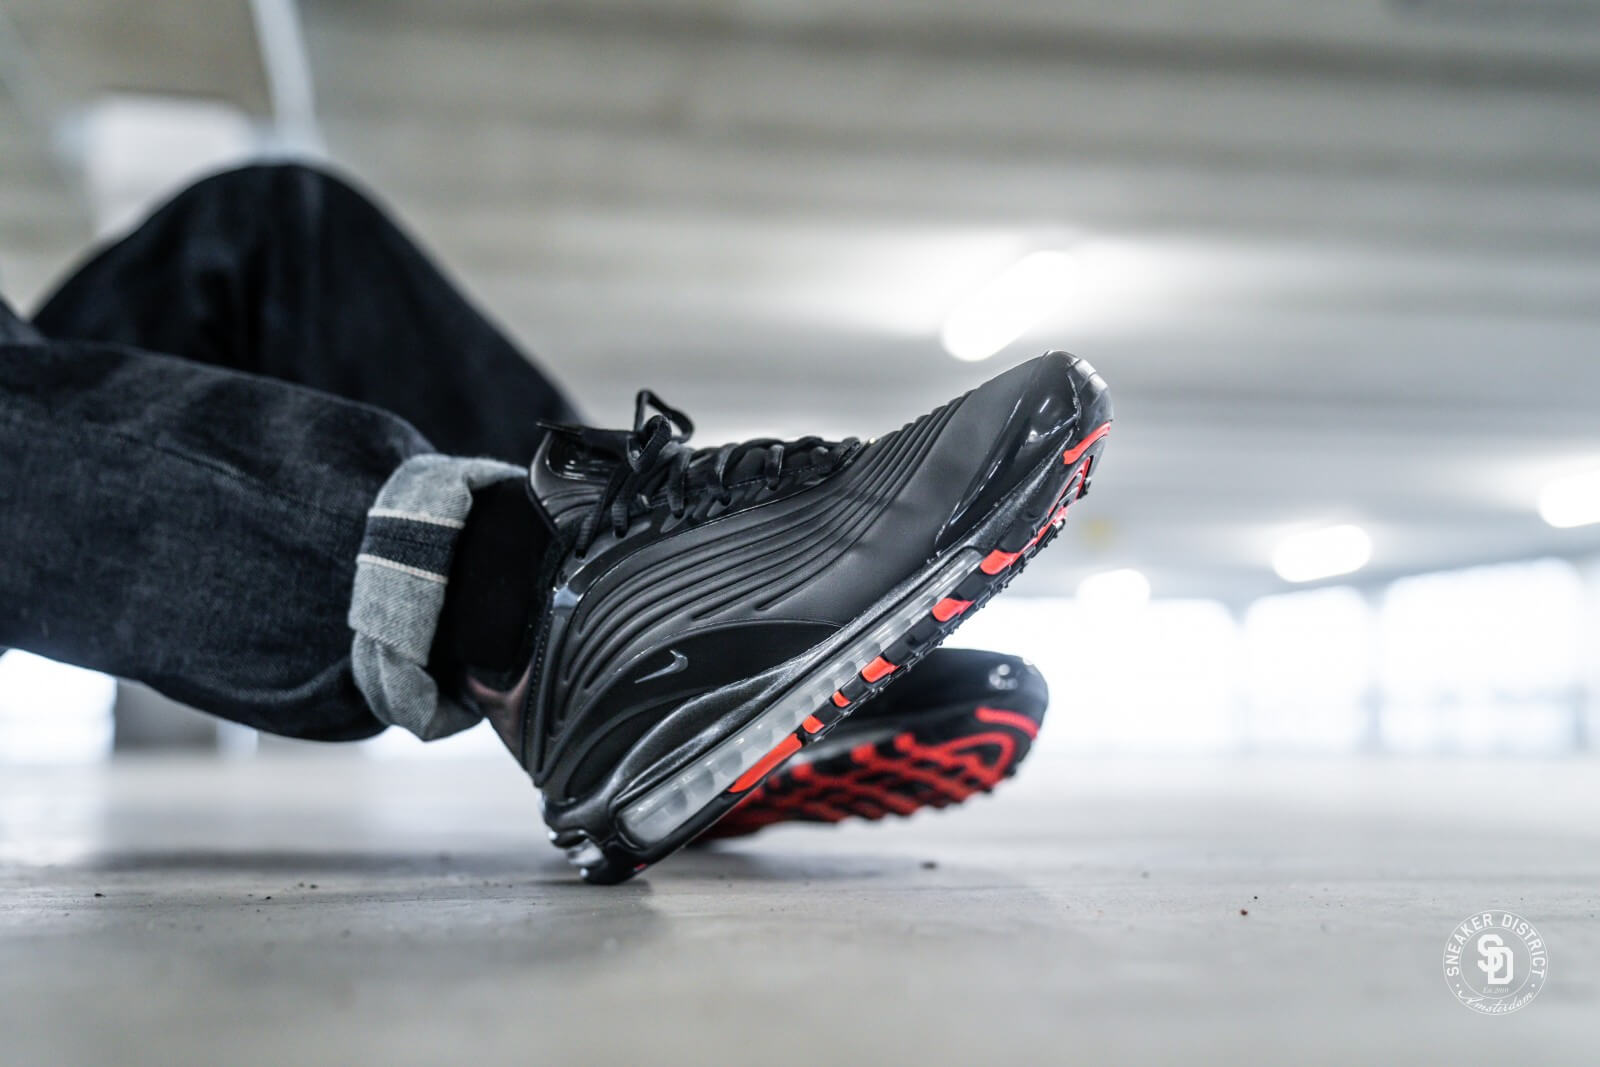 Nike Air Max Deluxe SE BlackAnthraciteBright Crimson AO8284 001